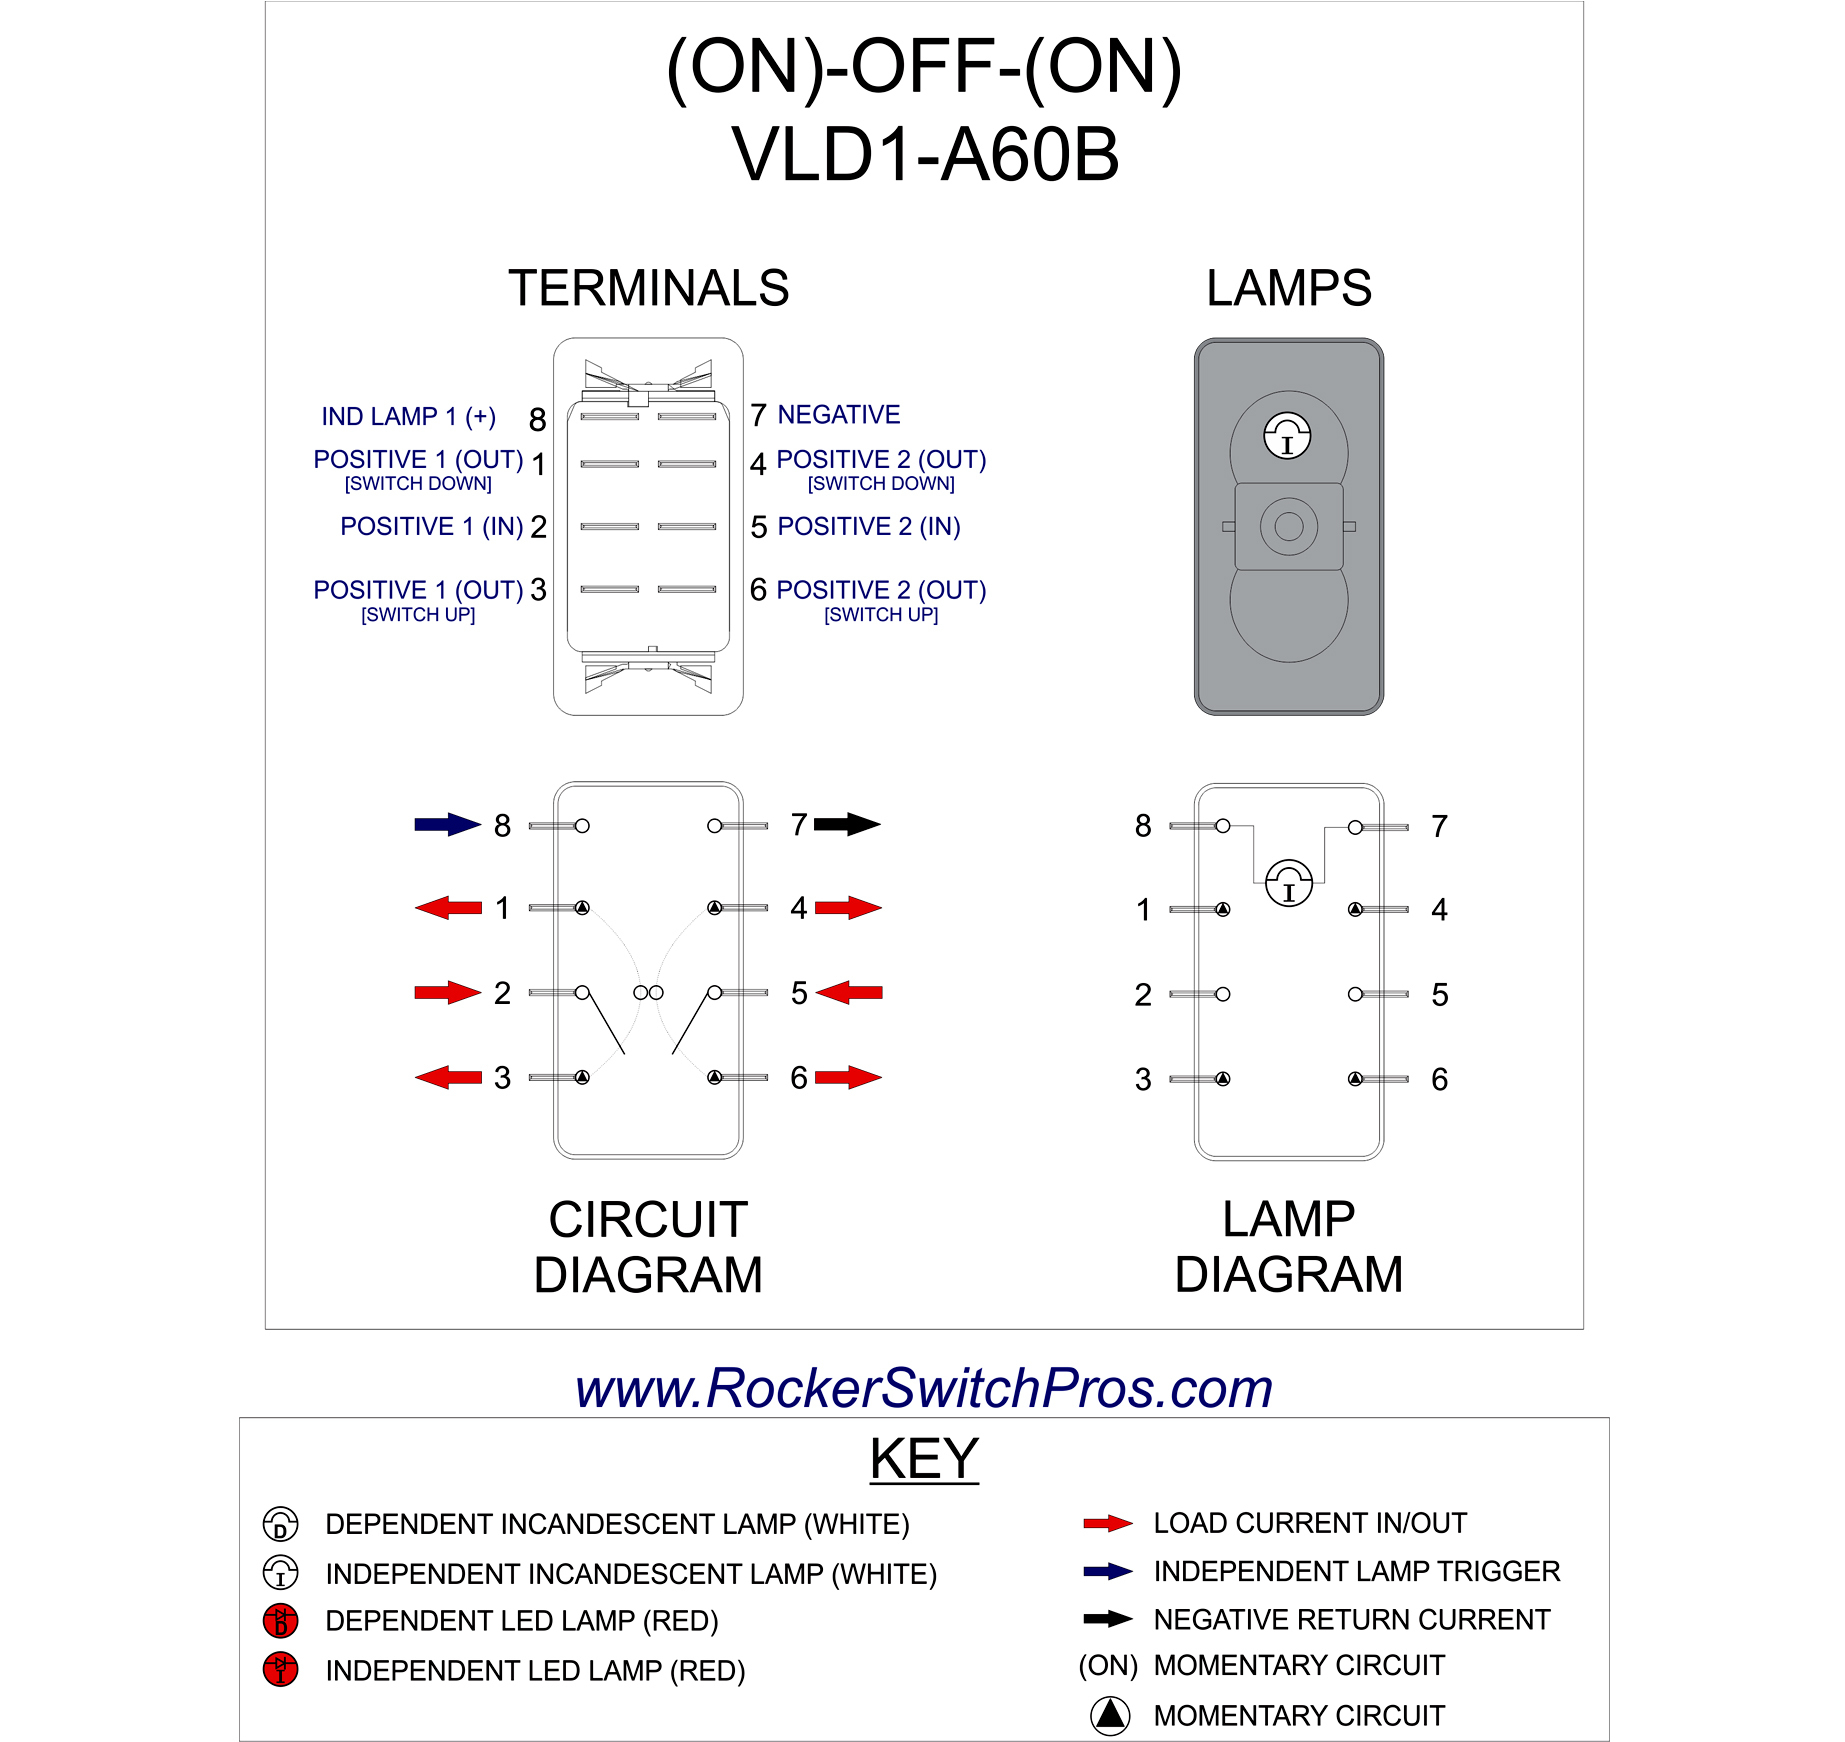 4 Pin Rocker Switch Wiring Diagram Free Picture | Manual E-Books - 5 Pin Rocker Switch Wiring Diagram